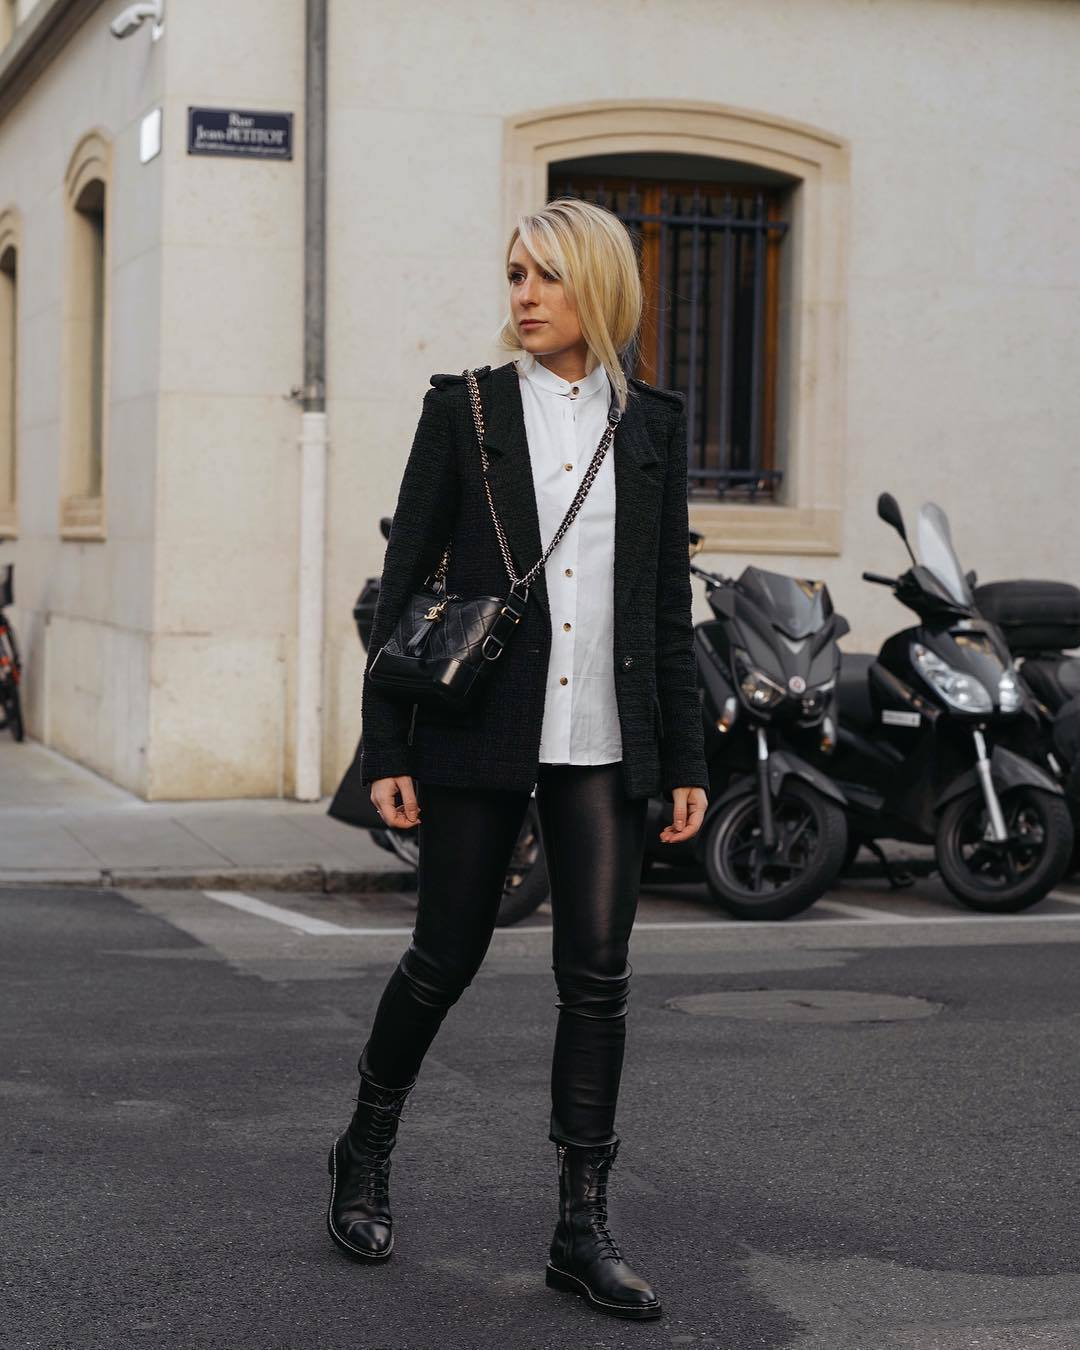 pants black leggings black boots lace up boots black blazer white shirt black bag chanel bag crossbody bag